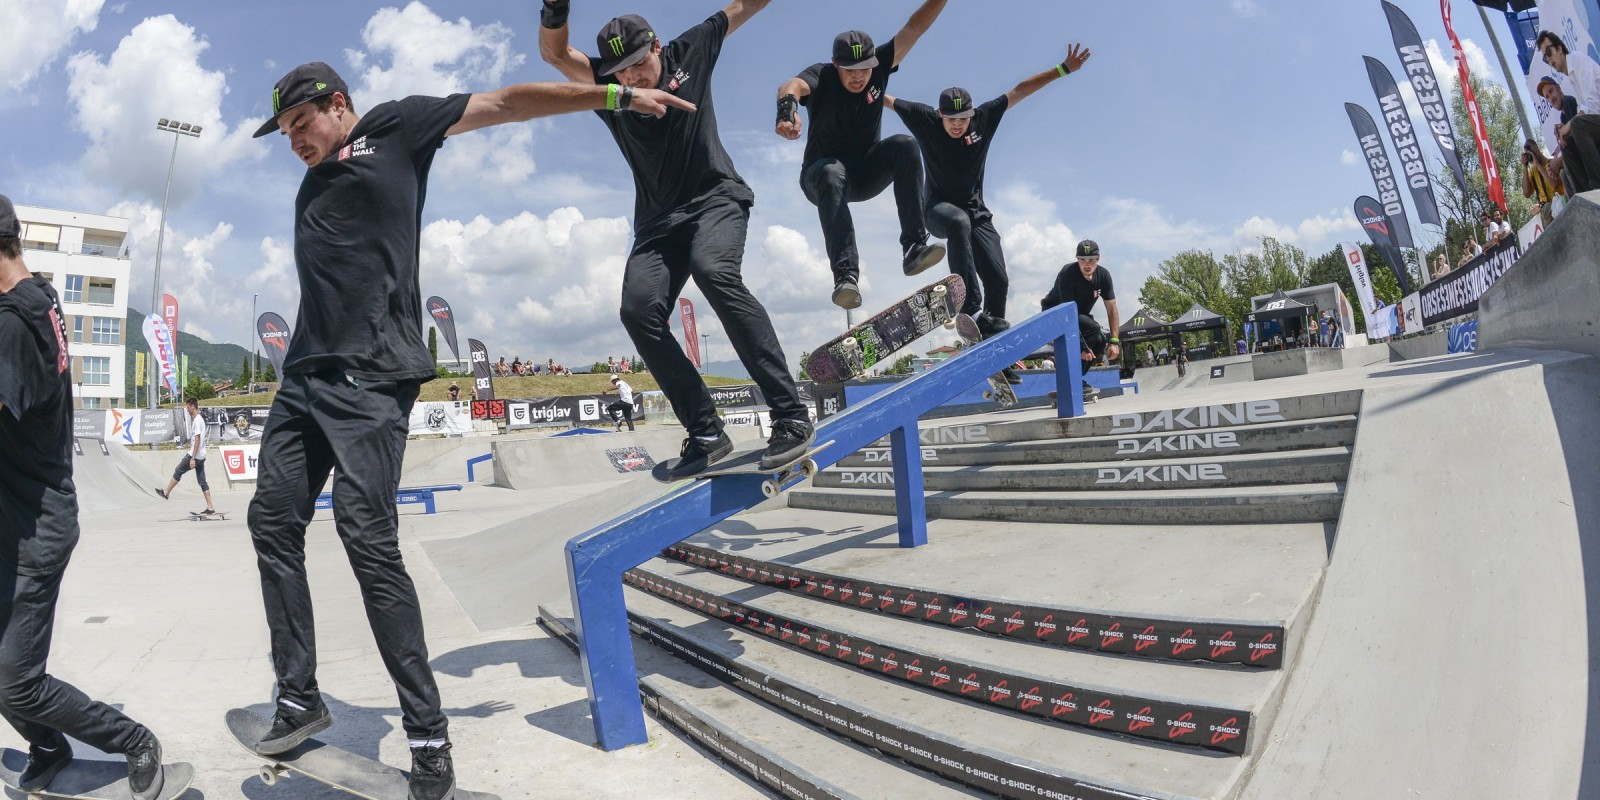 2017 FLOWGRIND Skate Contest, Slovenia, International countries with riders from 13 countries.